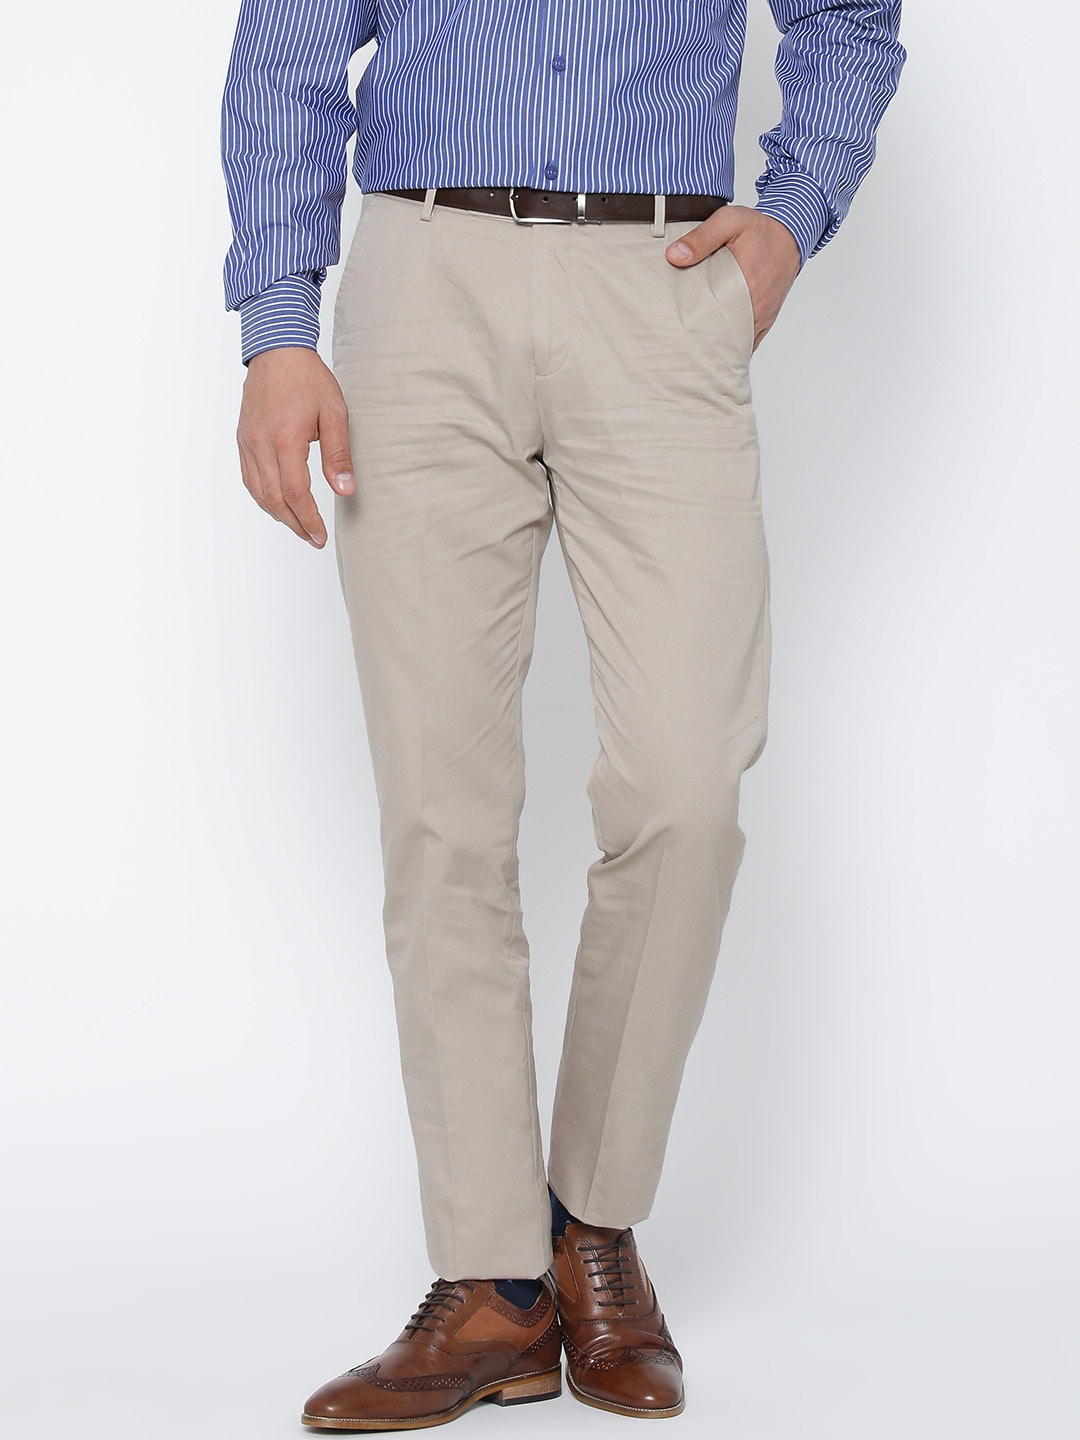 U S  Polo Assn  Men Beige Tapered Fit Trousers